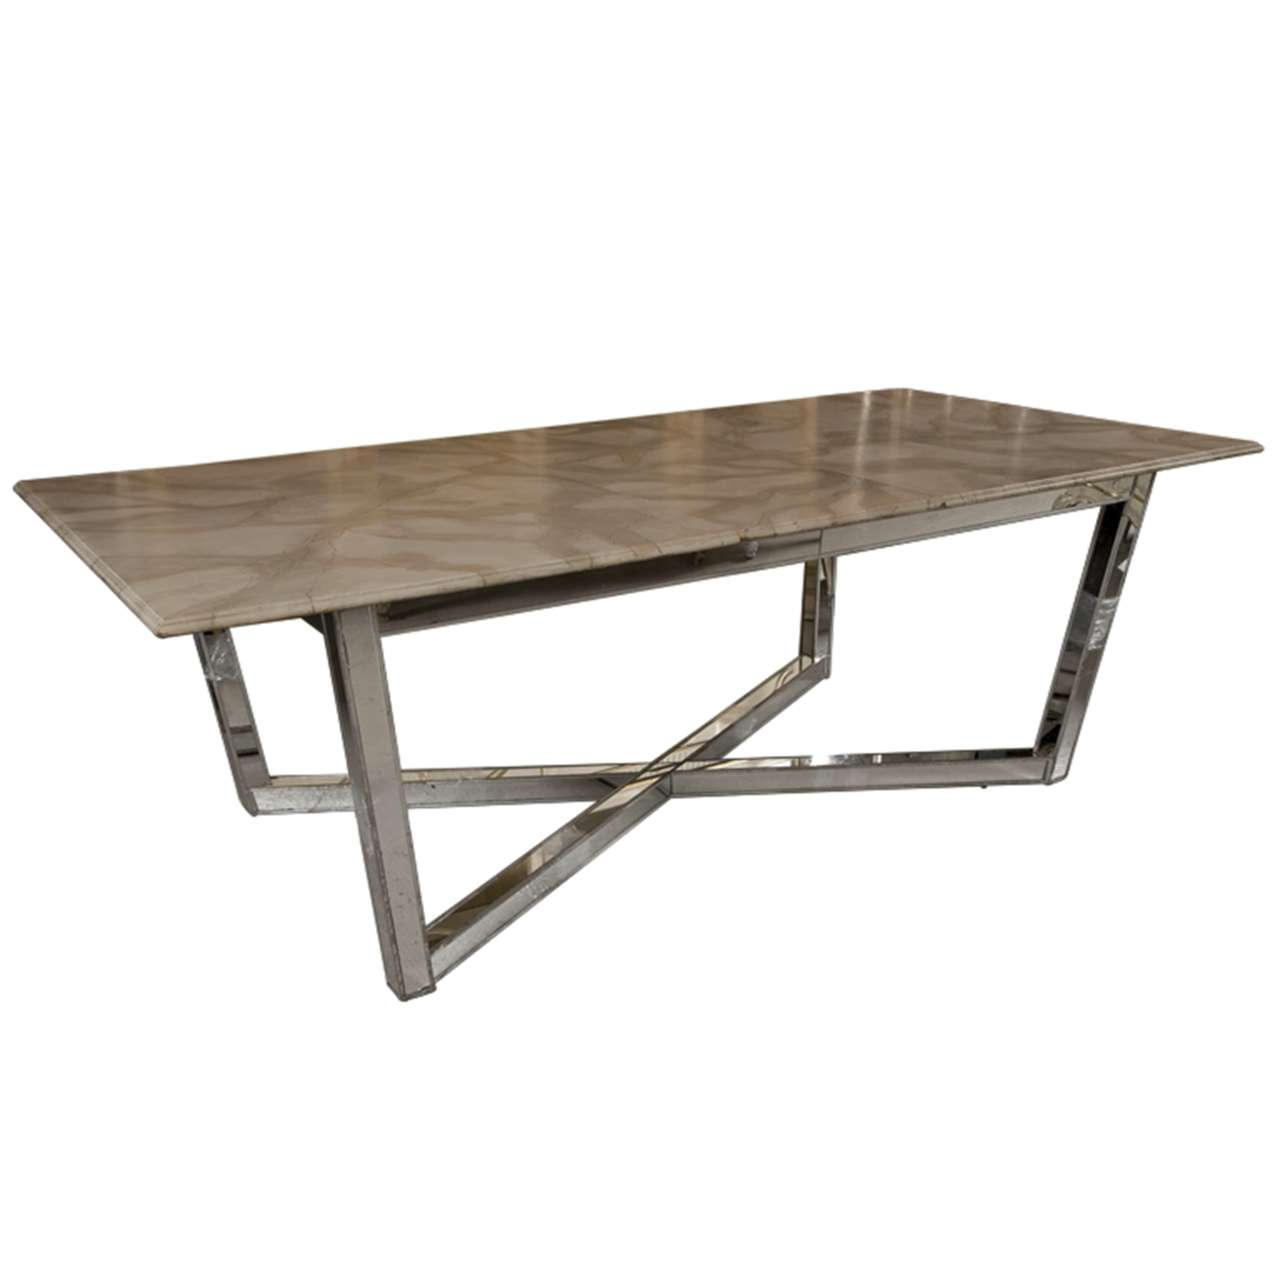 Mirrored base faux marble top dining table at 1stdibs for Marble dining room table